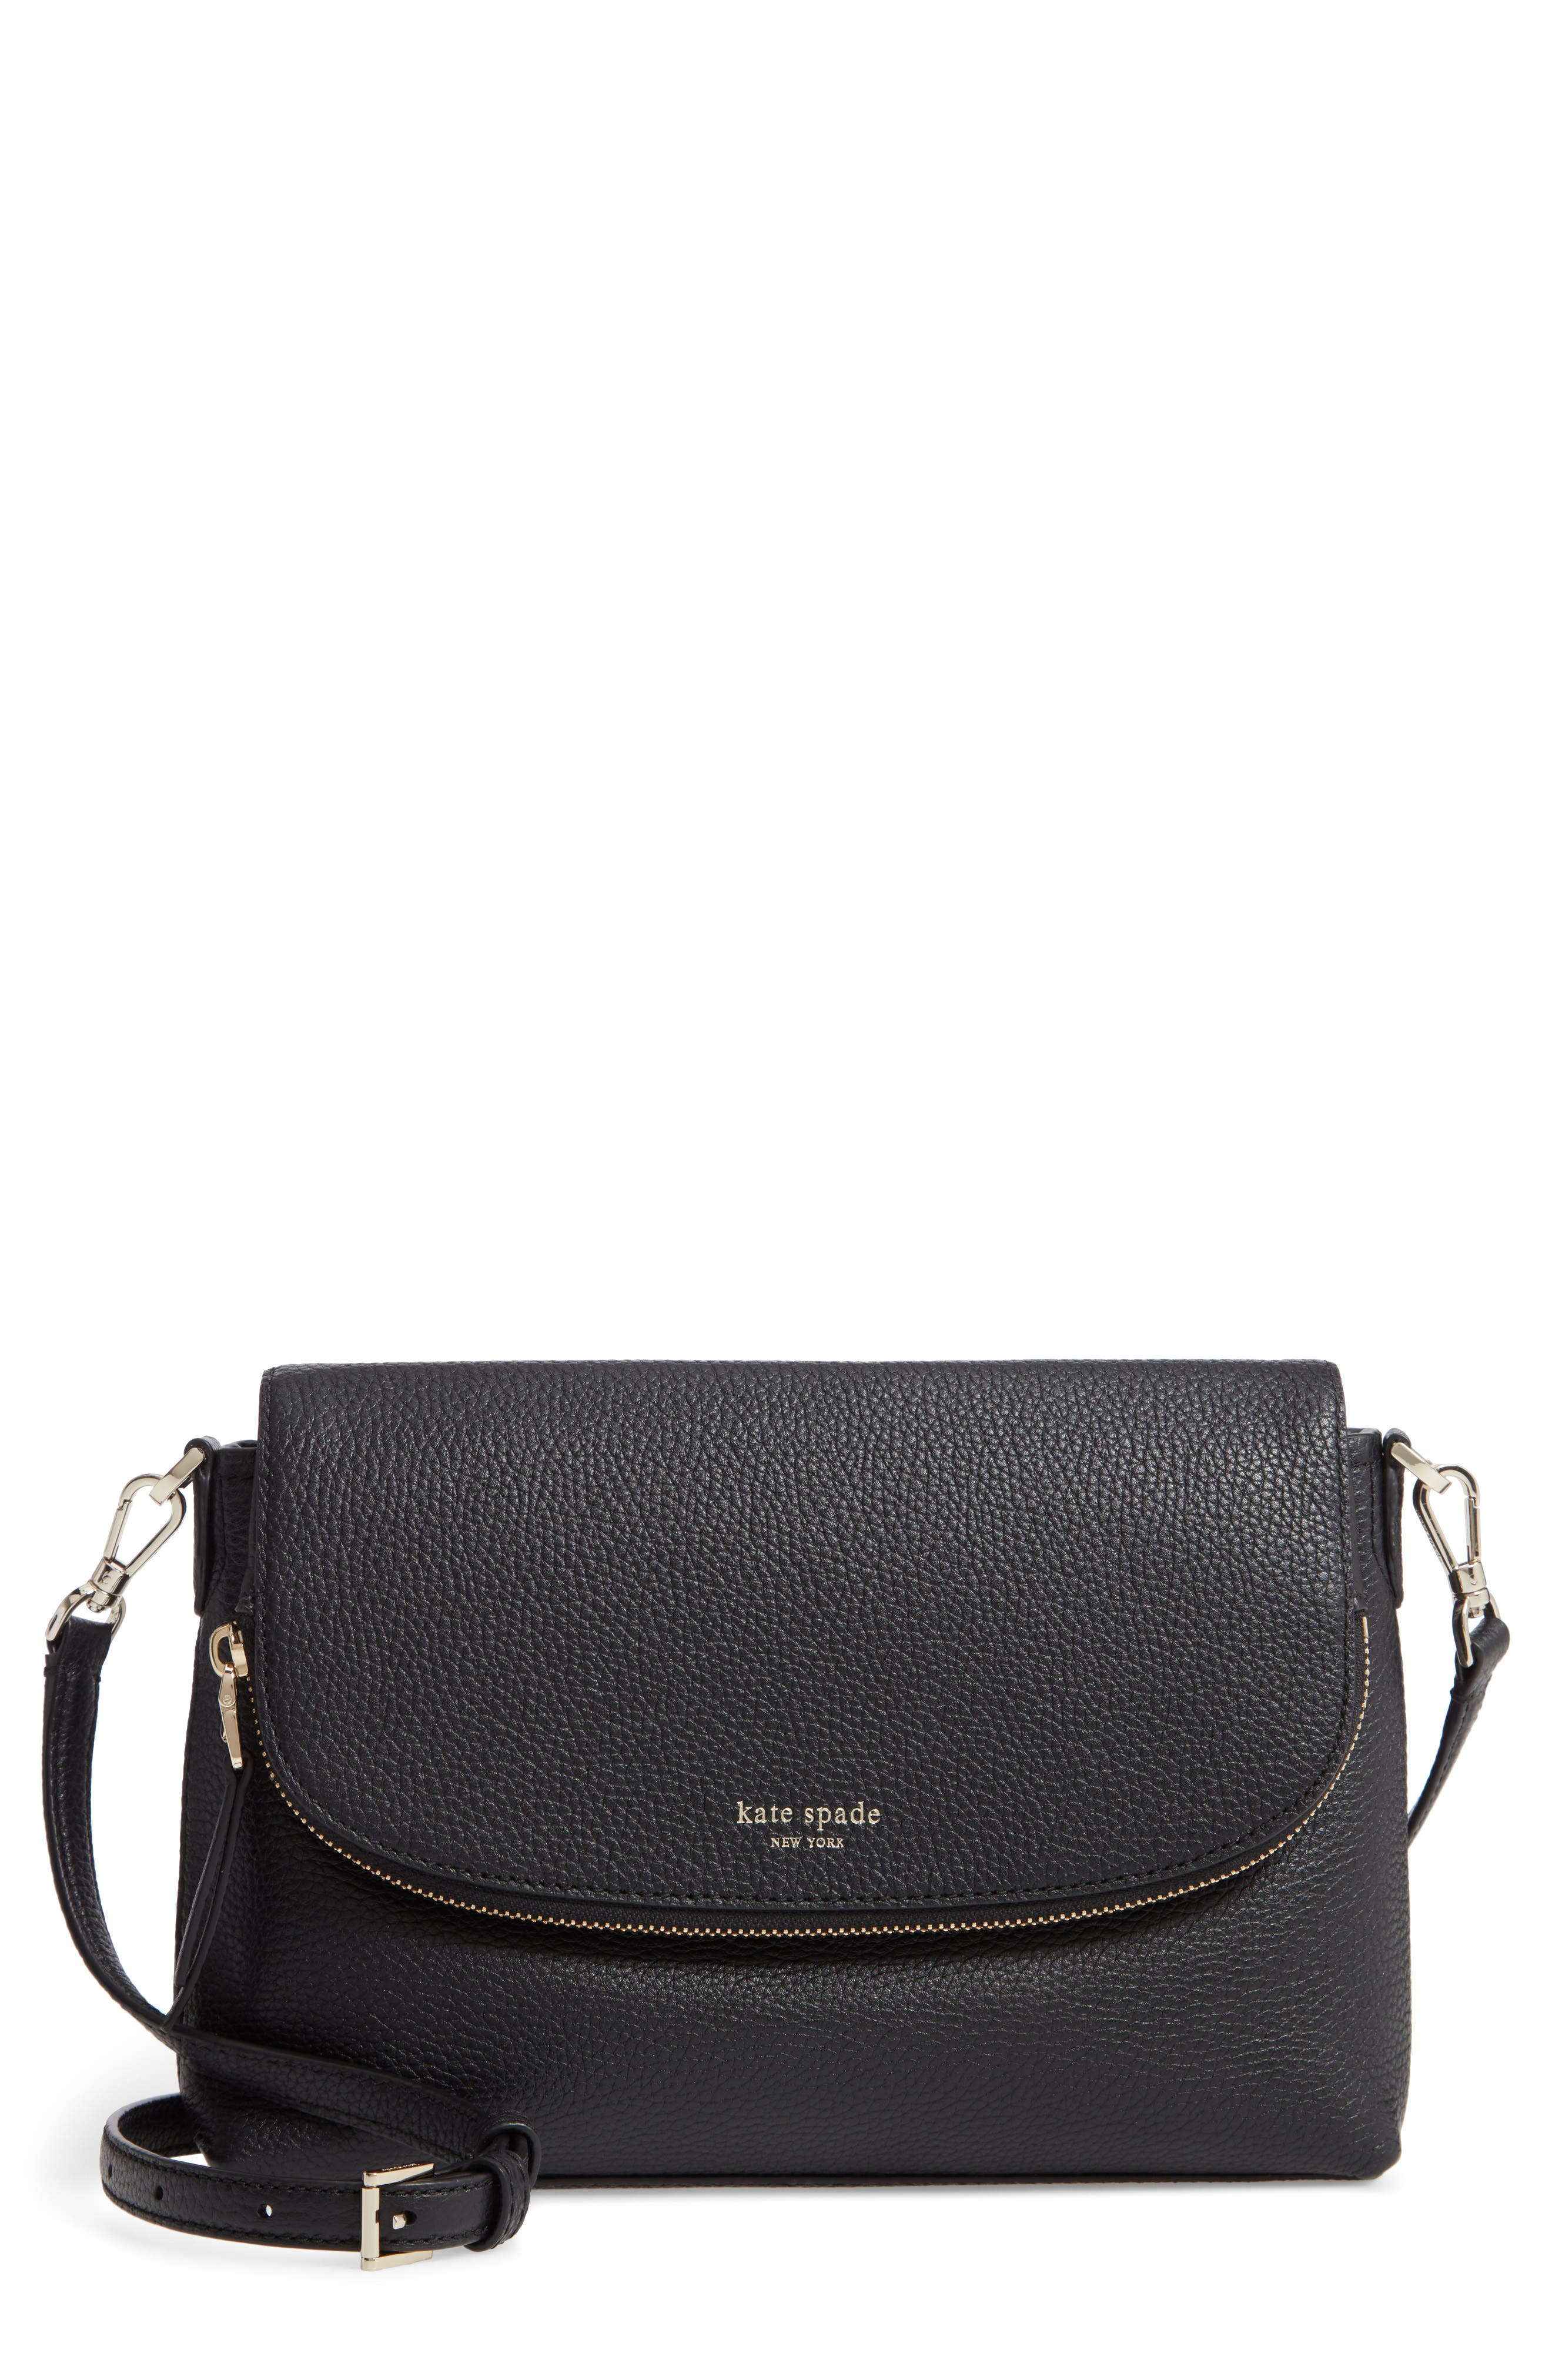 f44bbe463a93c Women s Kate Spade New York New Arrivals  Clothing